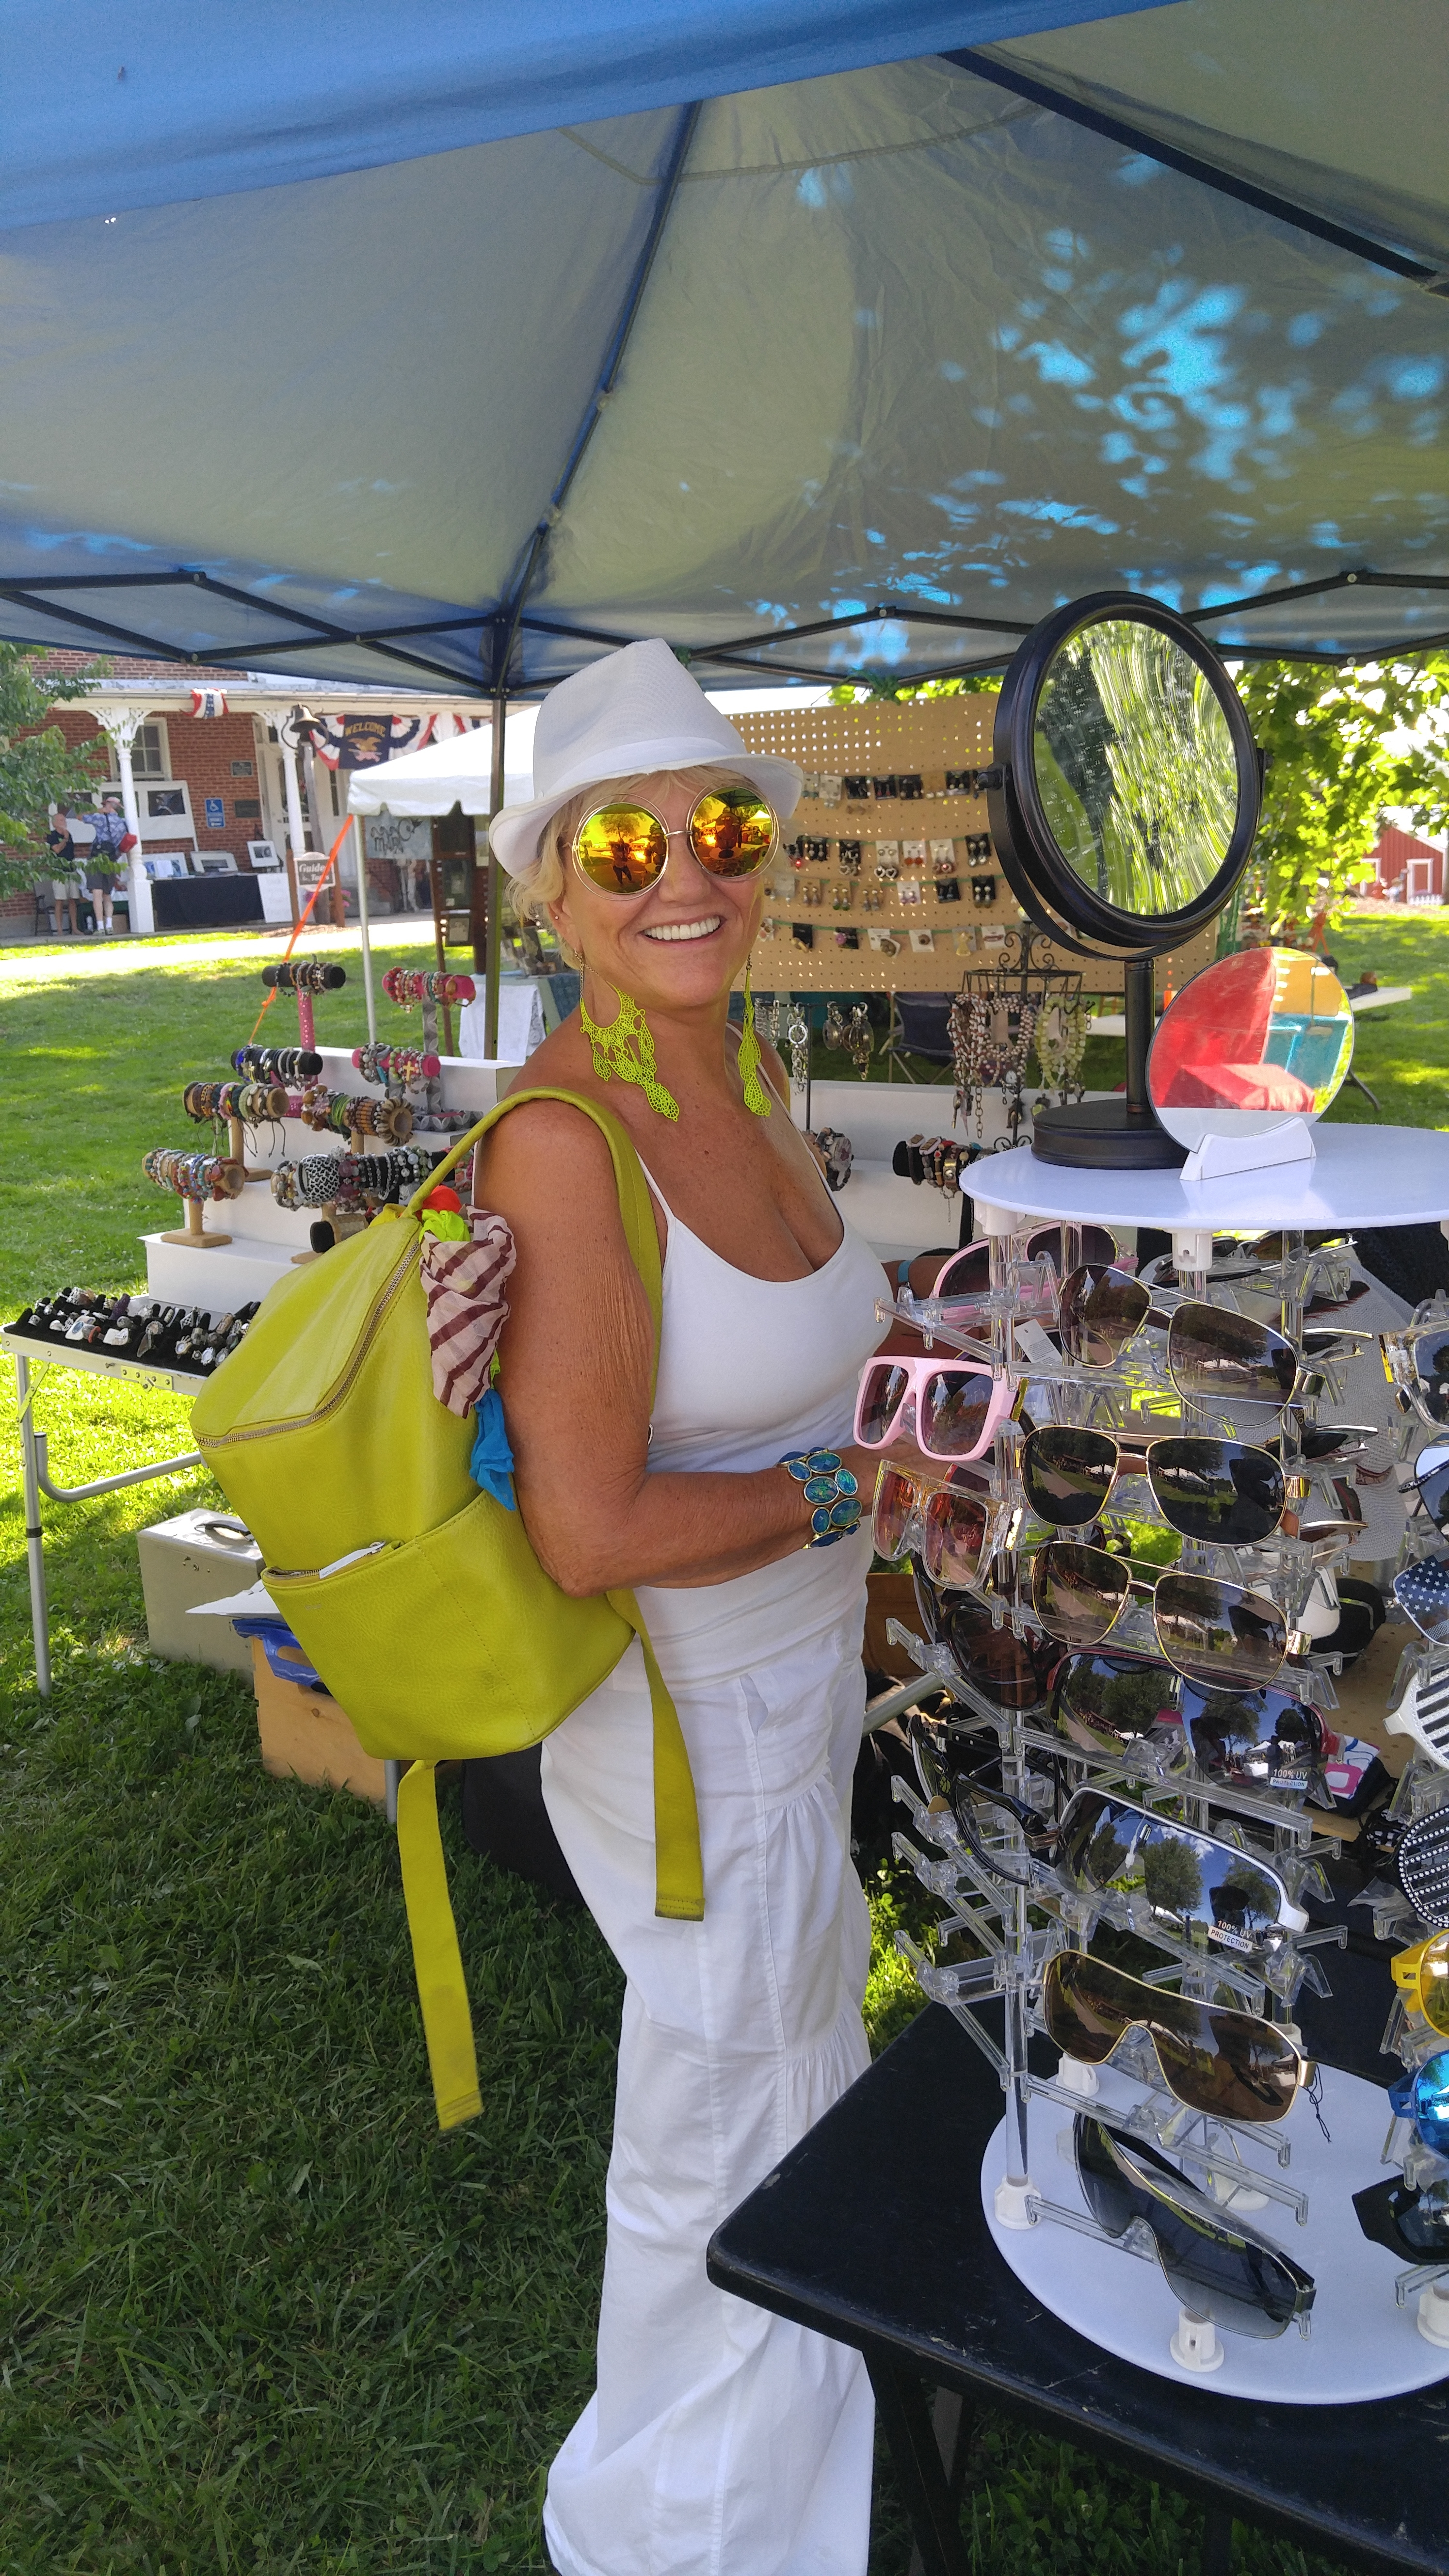 Customer rocking new sunglasses at Common Ground Festival July 2016